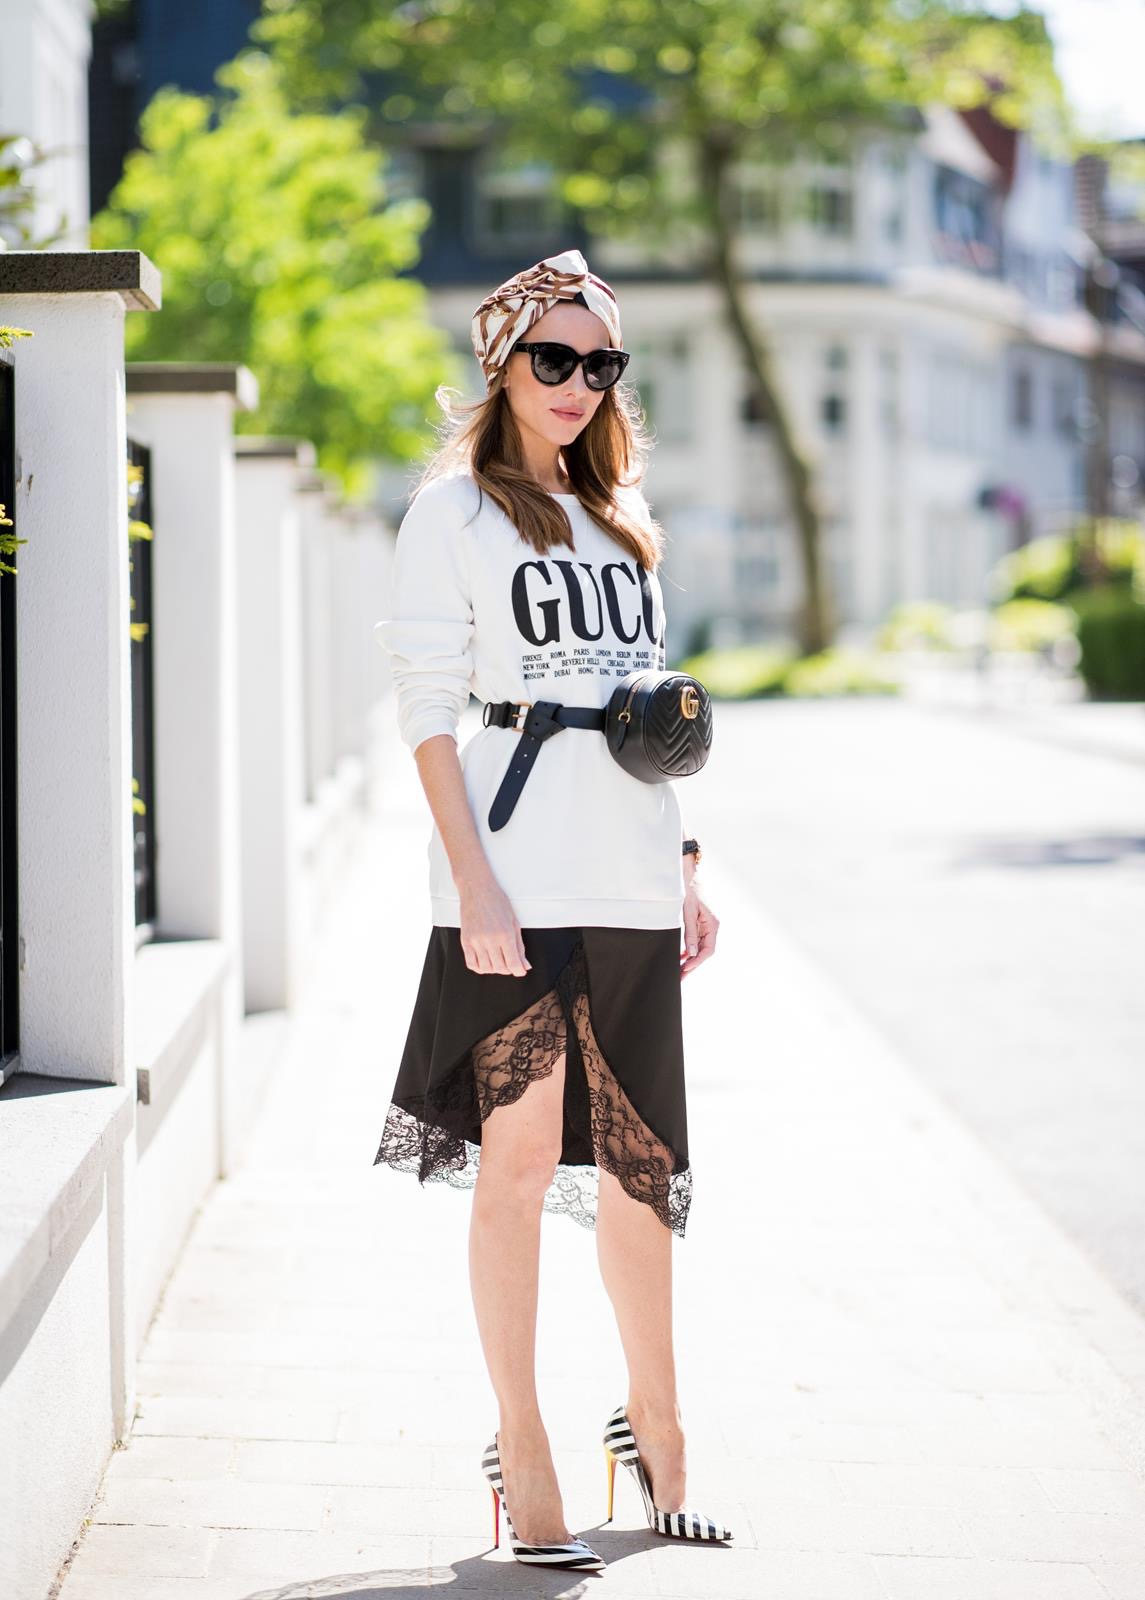 37b56b4e5236 ... Alexandra Lapp wearing a Gucci Belt Bag Look with a white crew-neck  cotton sweatshirt ...